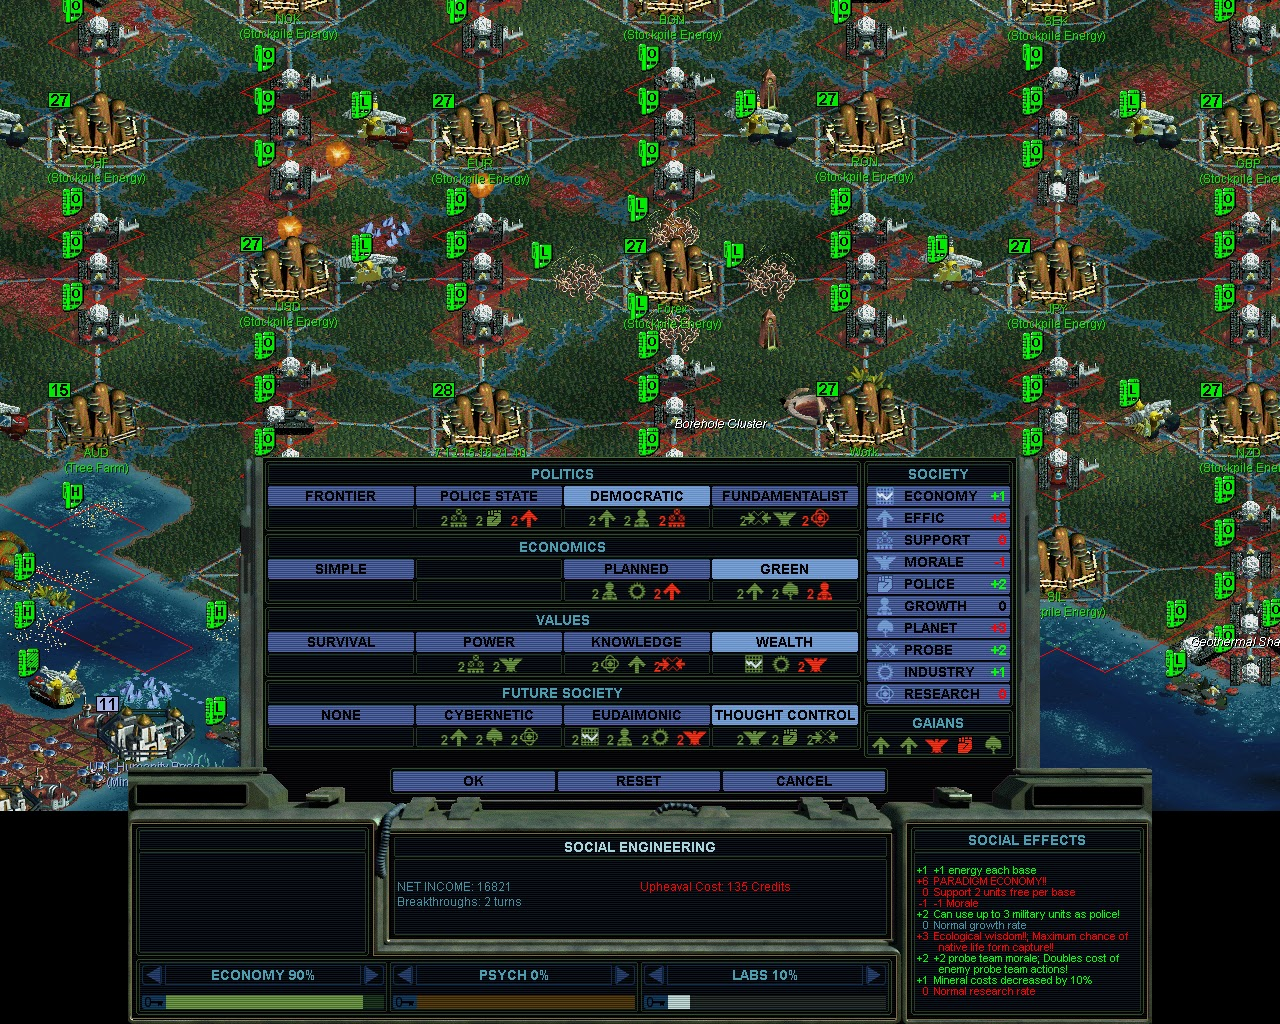 Sid Meier's Alpha Centauri - Society Options Screenshot